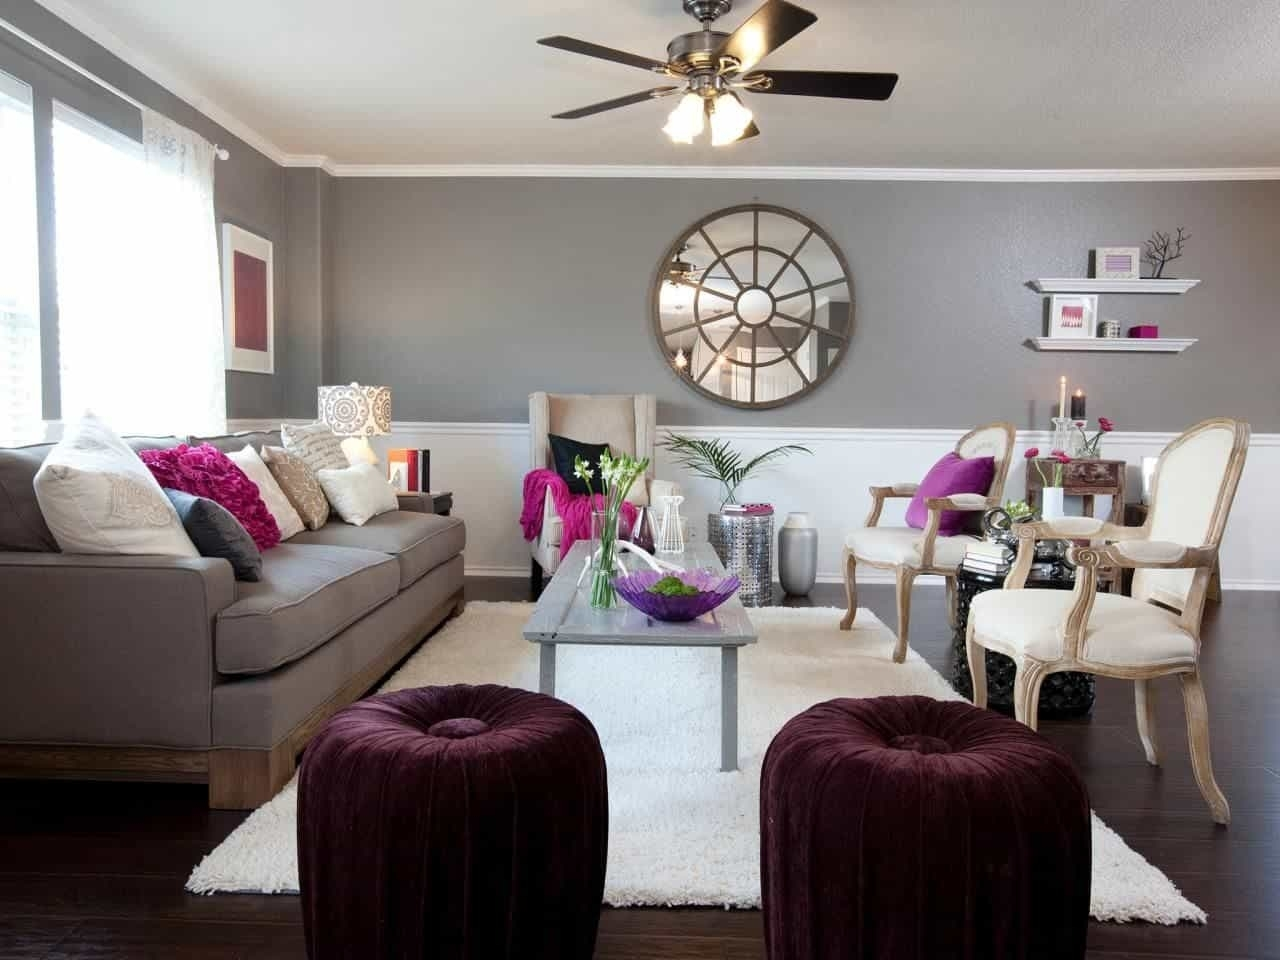 Living Room With Grey Wall Colors And Purple Accents – Colors That Intended For Current Wall Colors And Accents (View 14 of 15)